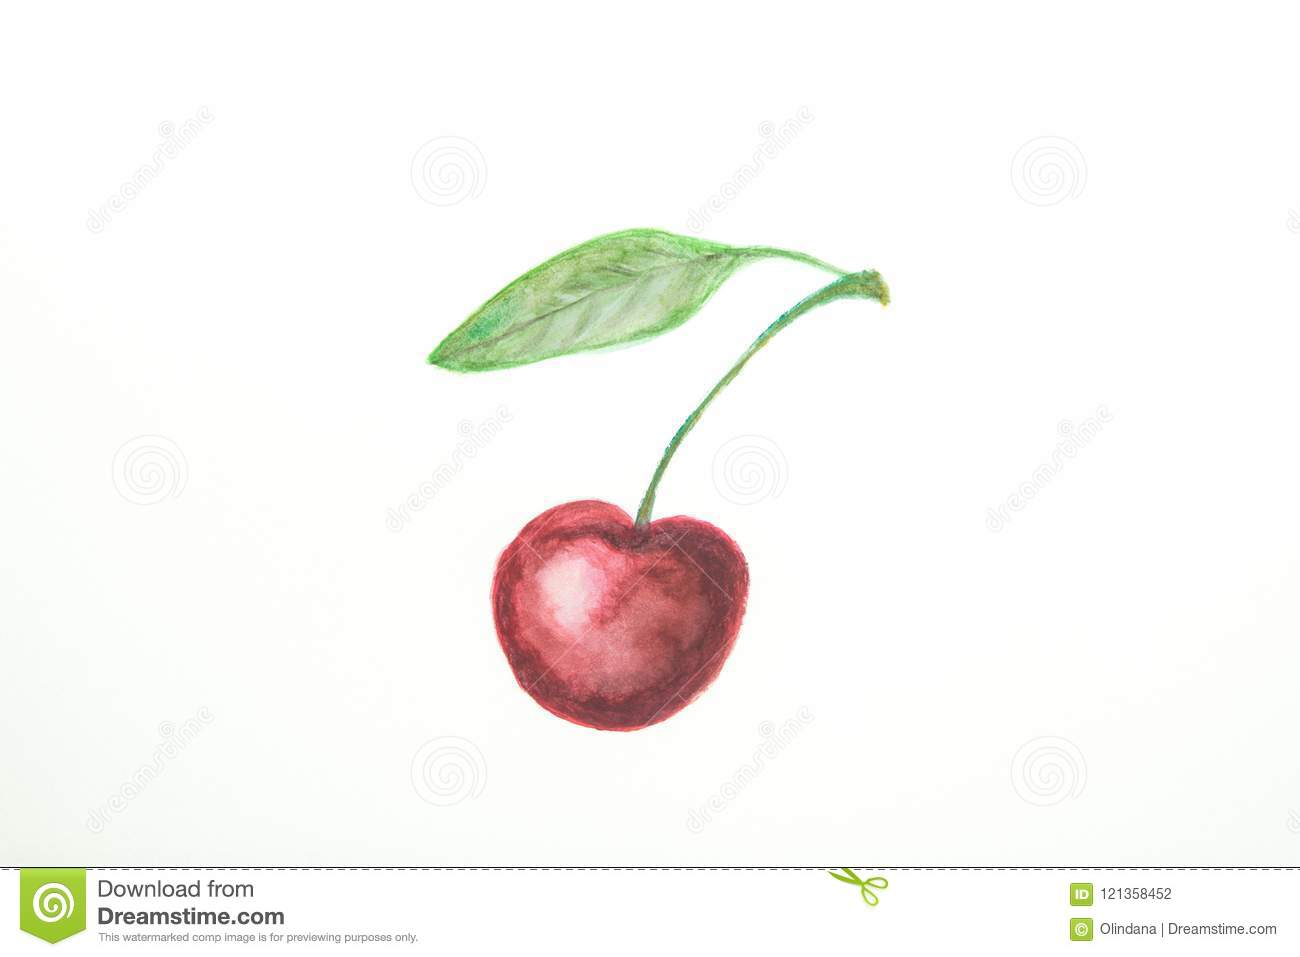 Hand Drawn Watercolor Painting of Ripe Juicy Single Sweet Cherry with Stem Green Leaf in Doodle Kids Style. White Paper Background